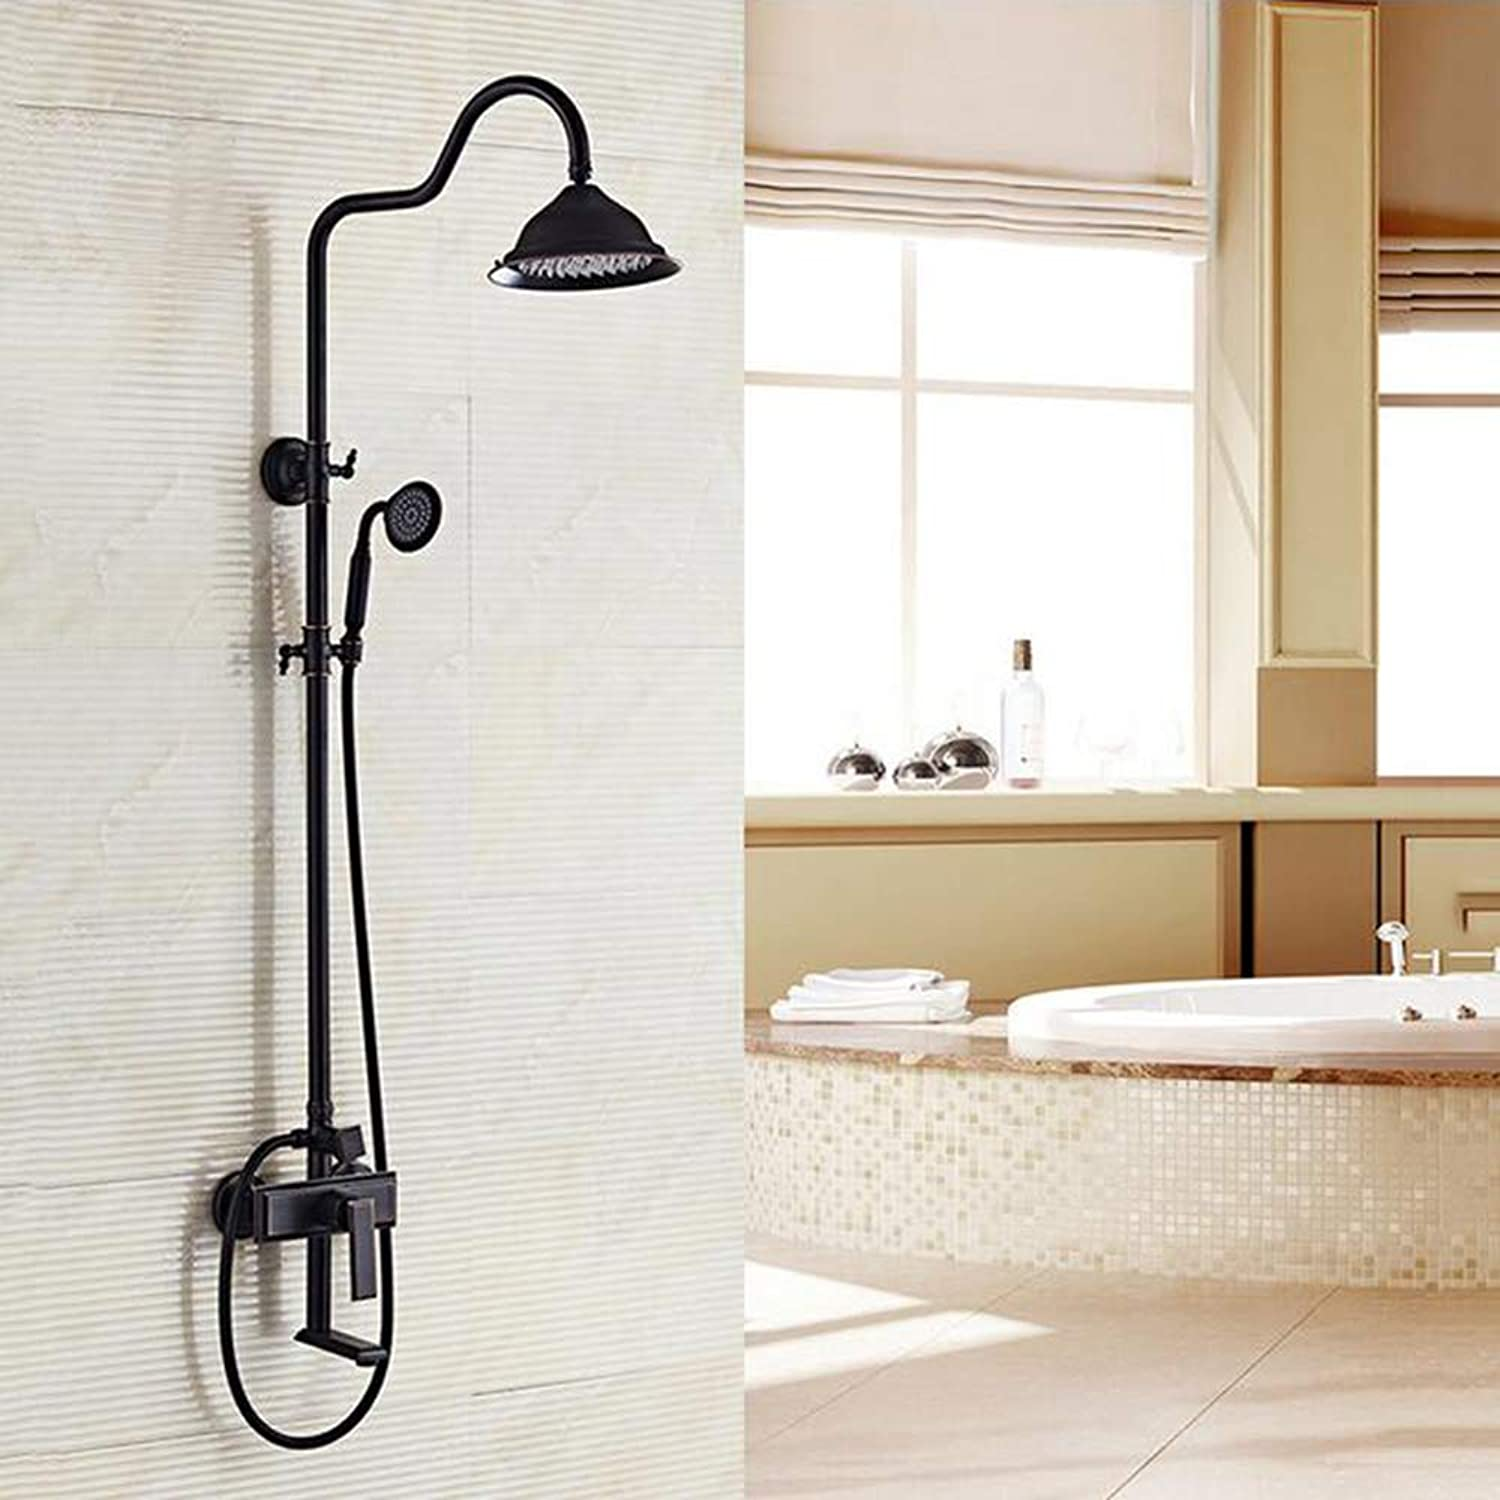 MICHEN Bathroom Luxury Rain Mixer Shower Combo Set Wall Mounted Rainfall Shower Head System